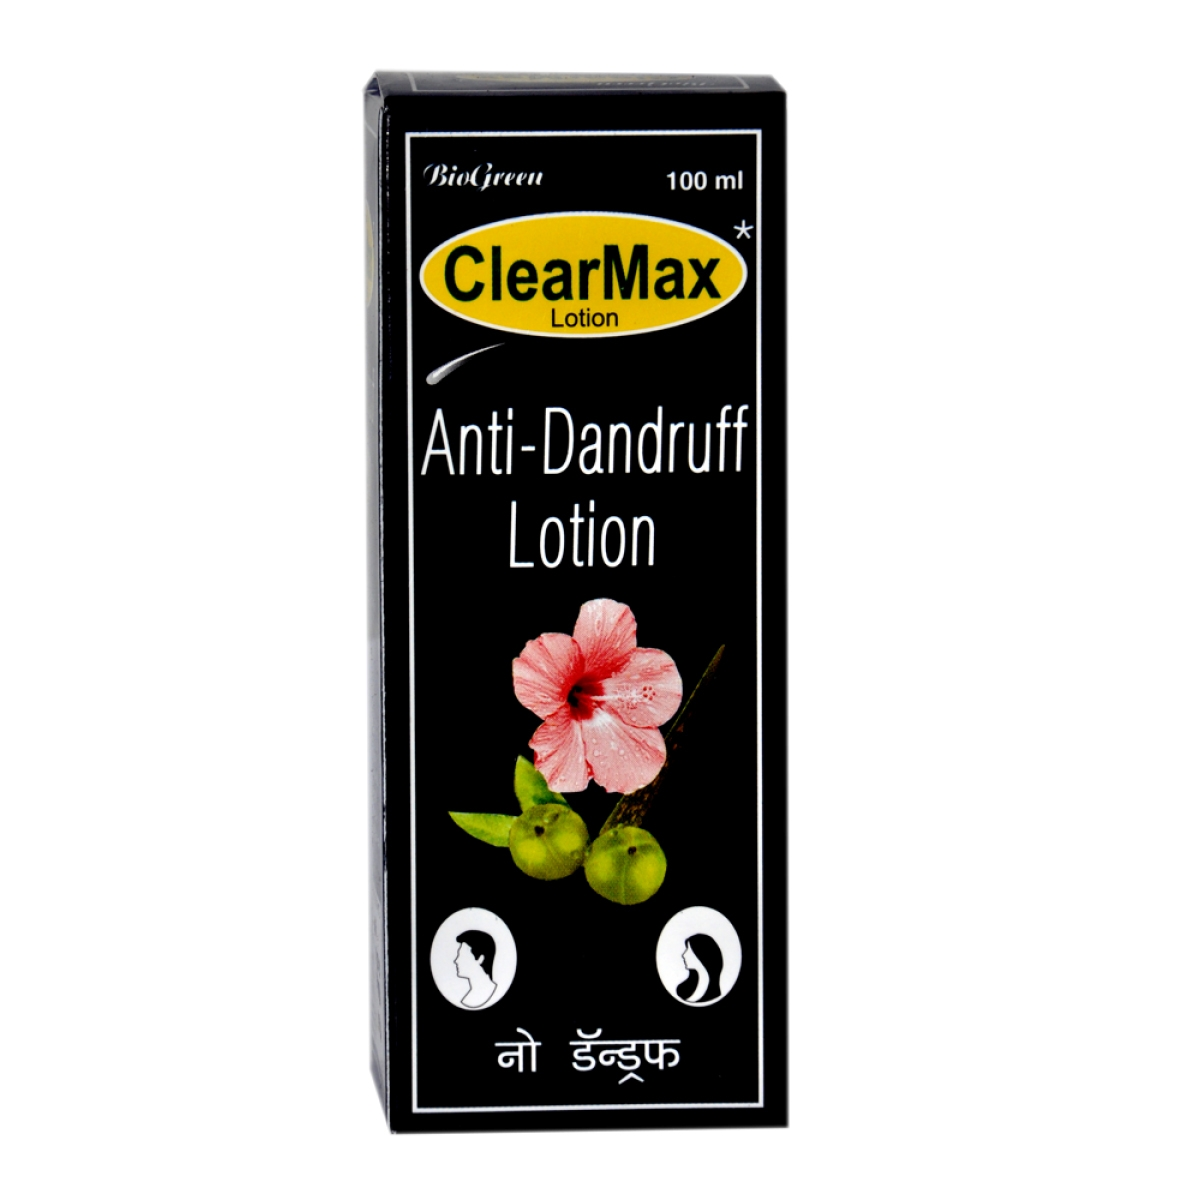 Clear Max Lotion In Saharsa